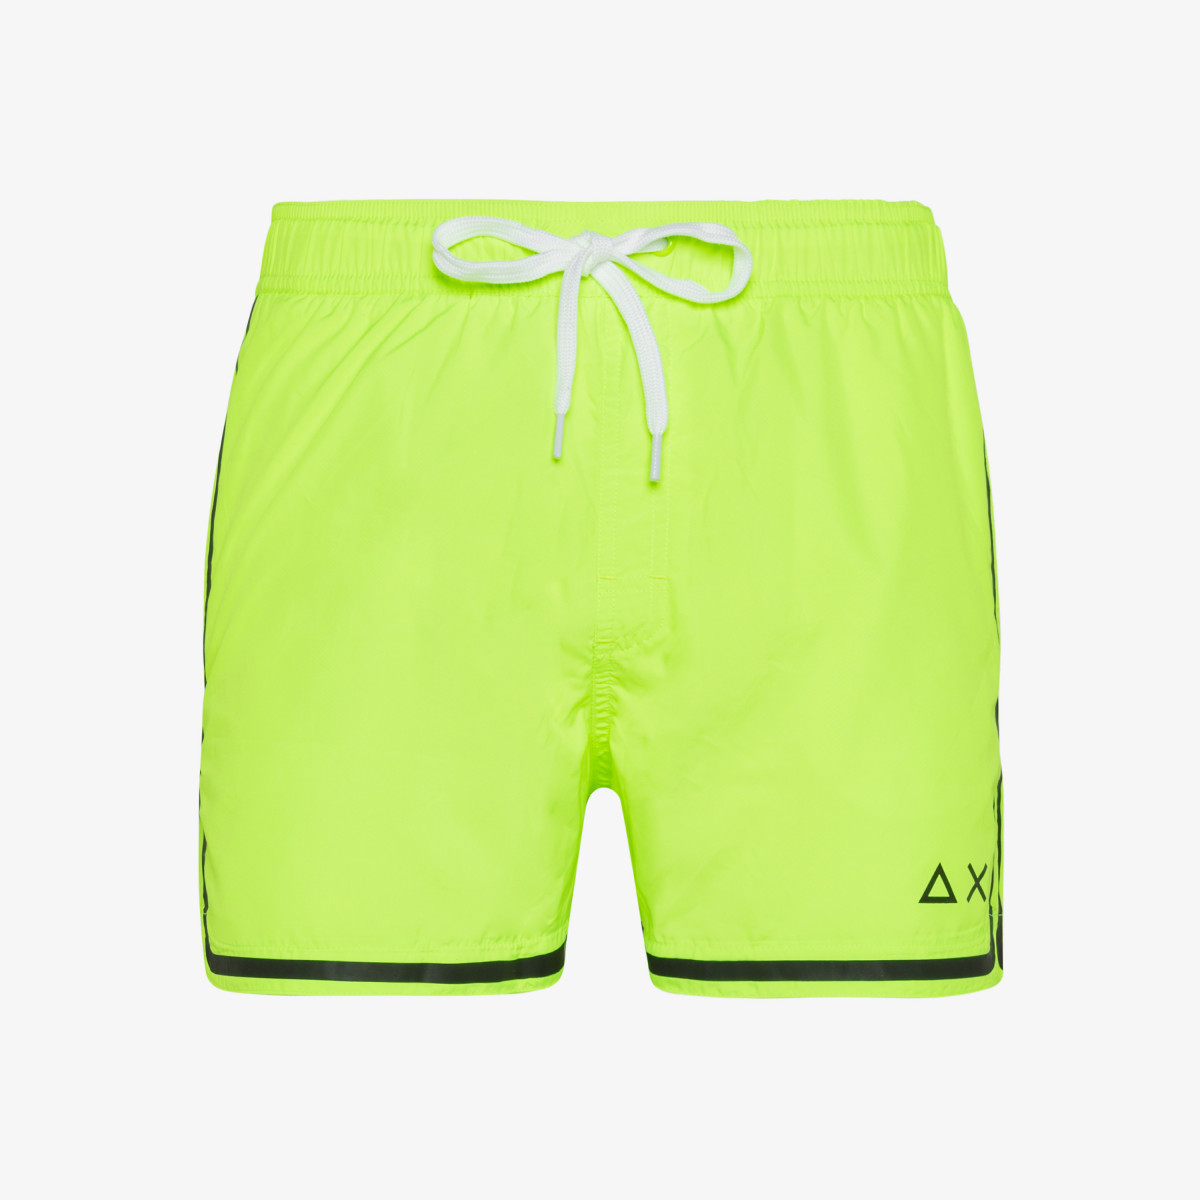 SWIM PANT SIDE BAND WHITE YELLOW FLUO